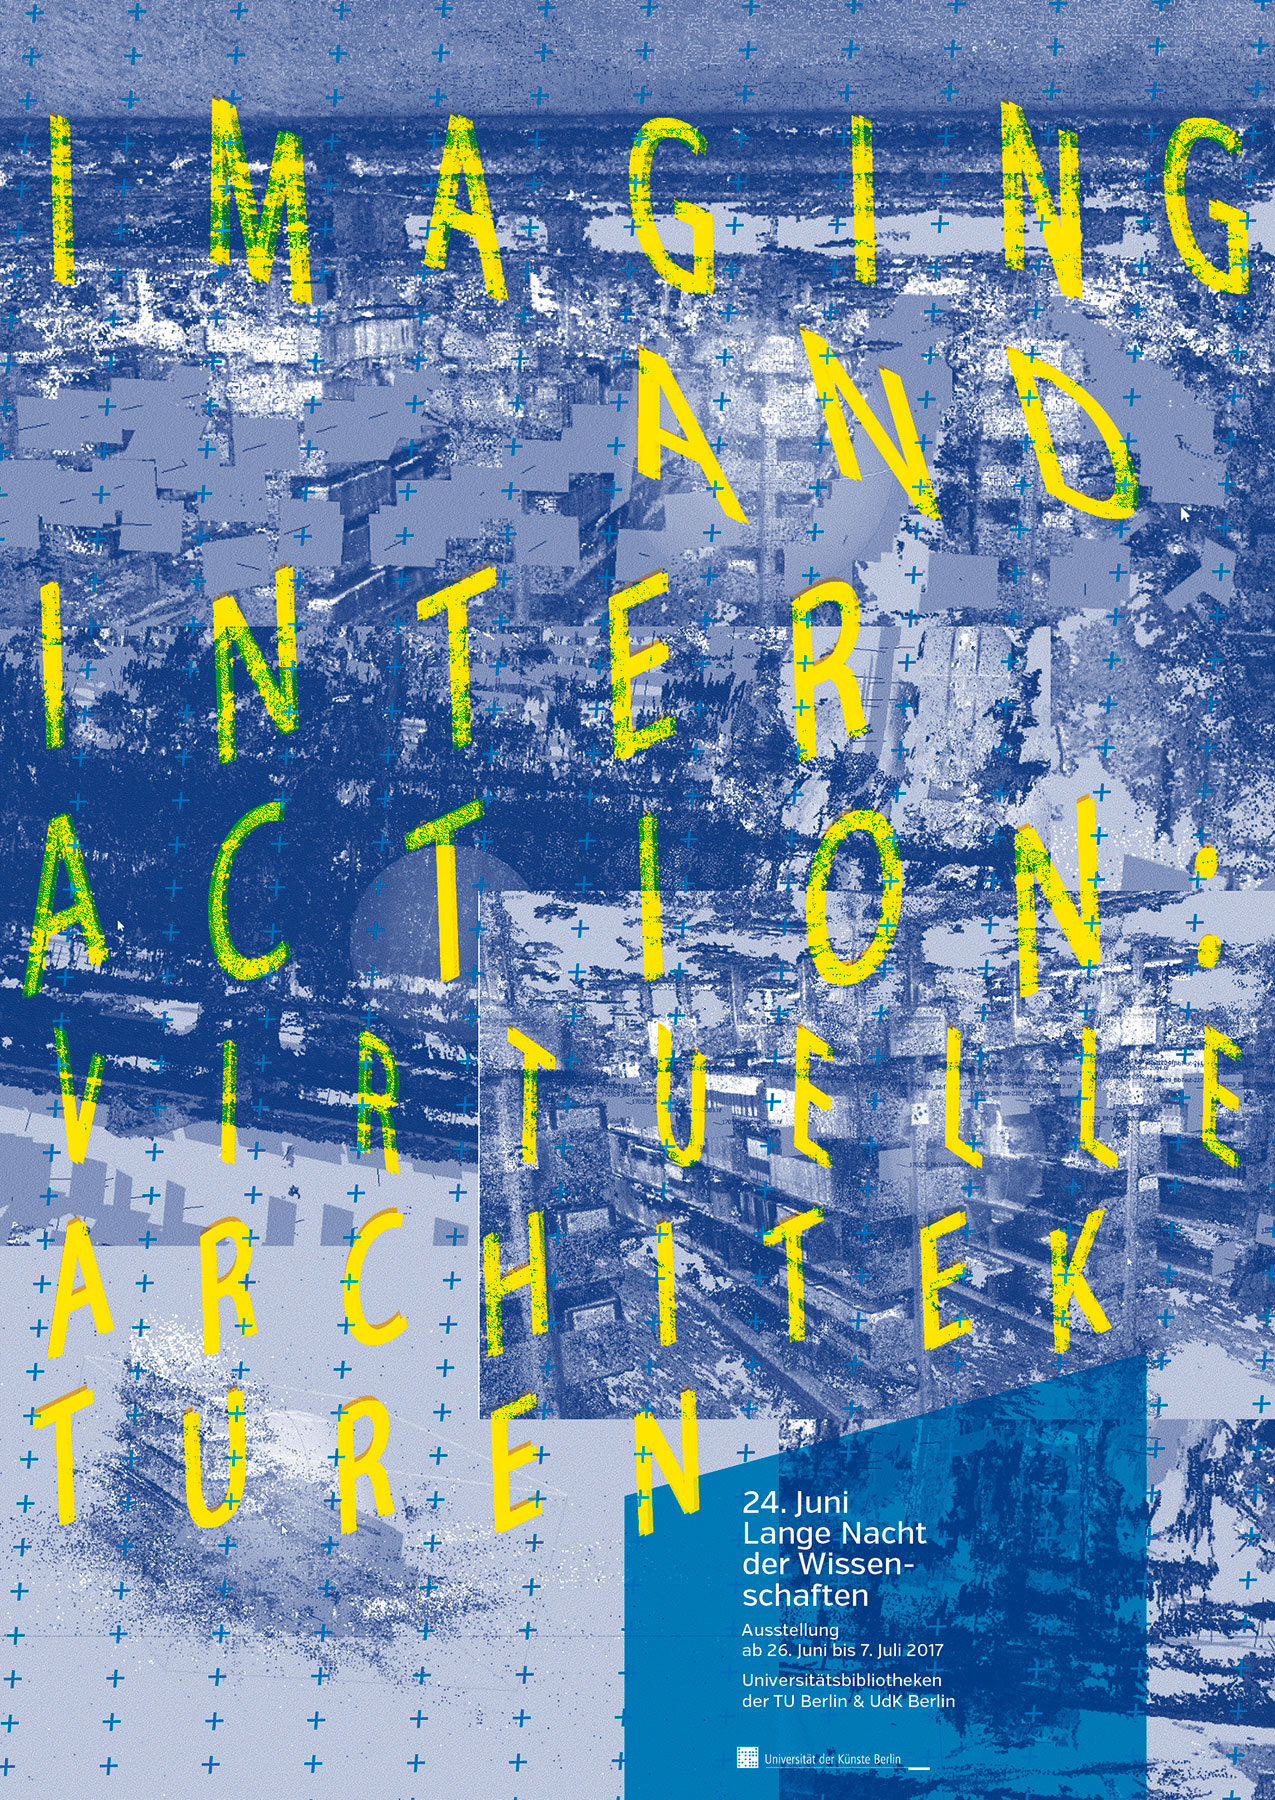 Poster Architecture Imaging and Interaction UdK Berlin Gestaltung Poster Design Typografie